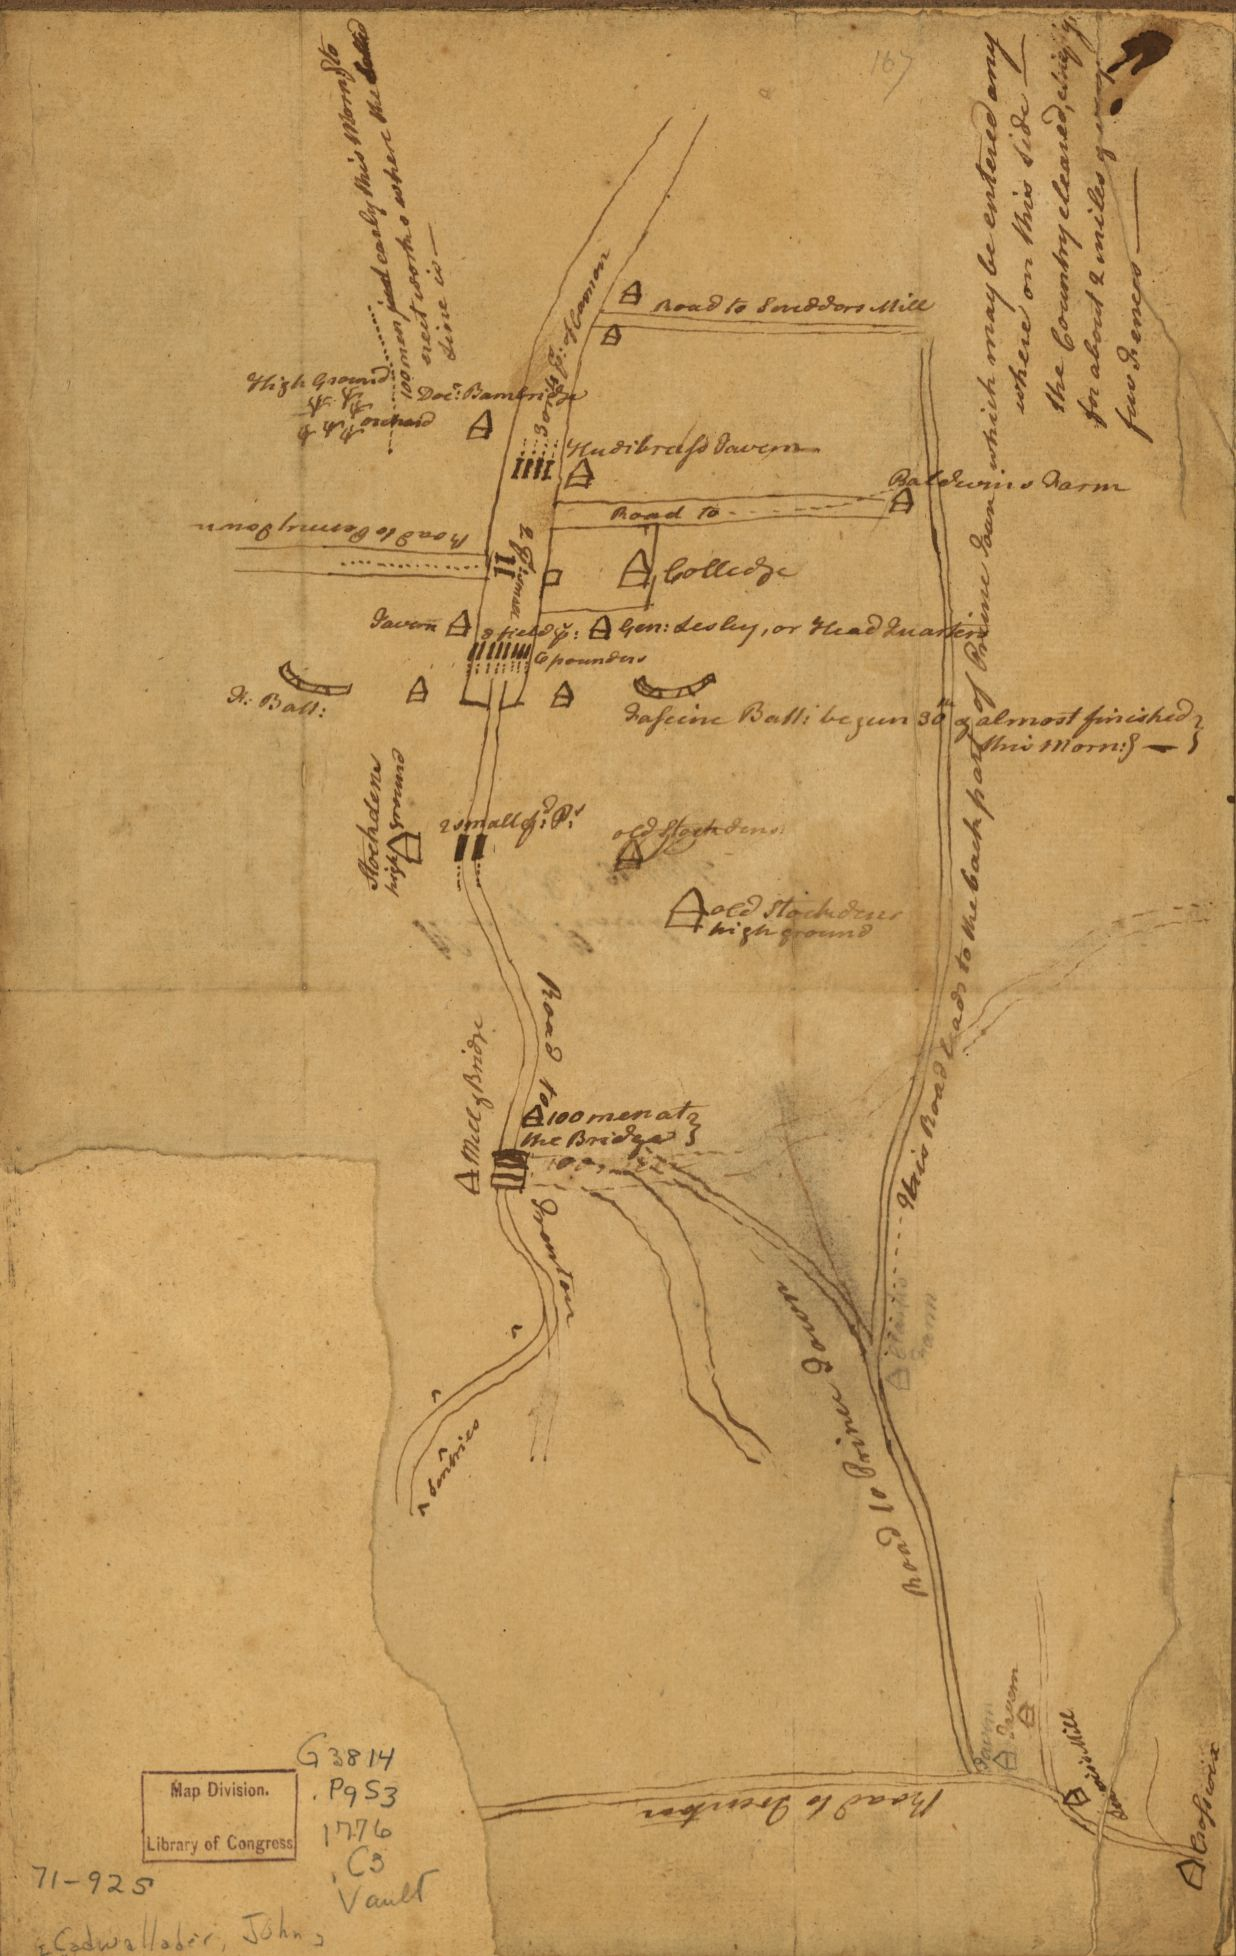 Map of Princeton drawn by American spies - Plan of Princeton, Dec. 31, 1776, Courtesy Library of Congress. [G3814.P9S3 1776 .C3]